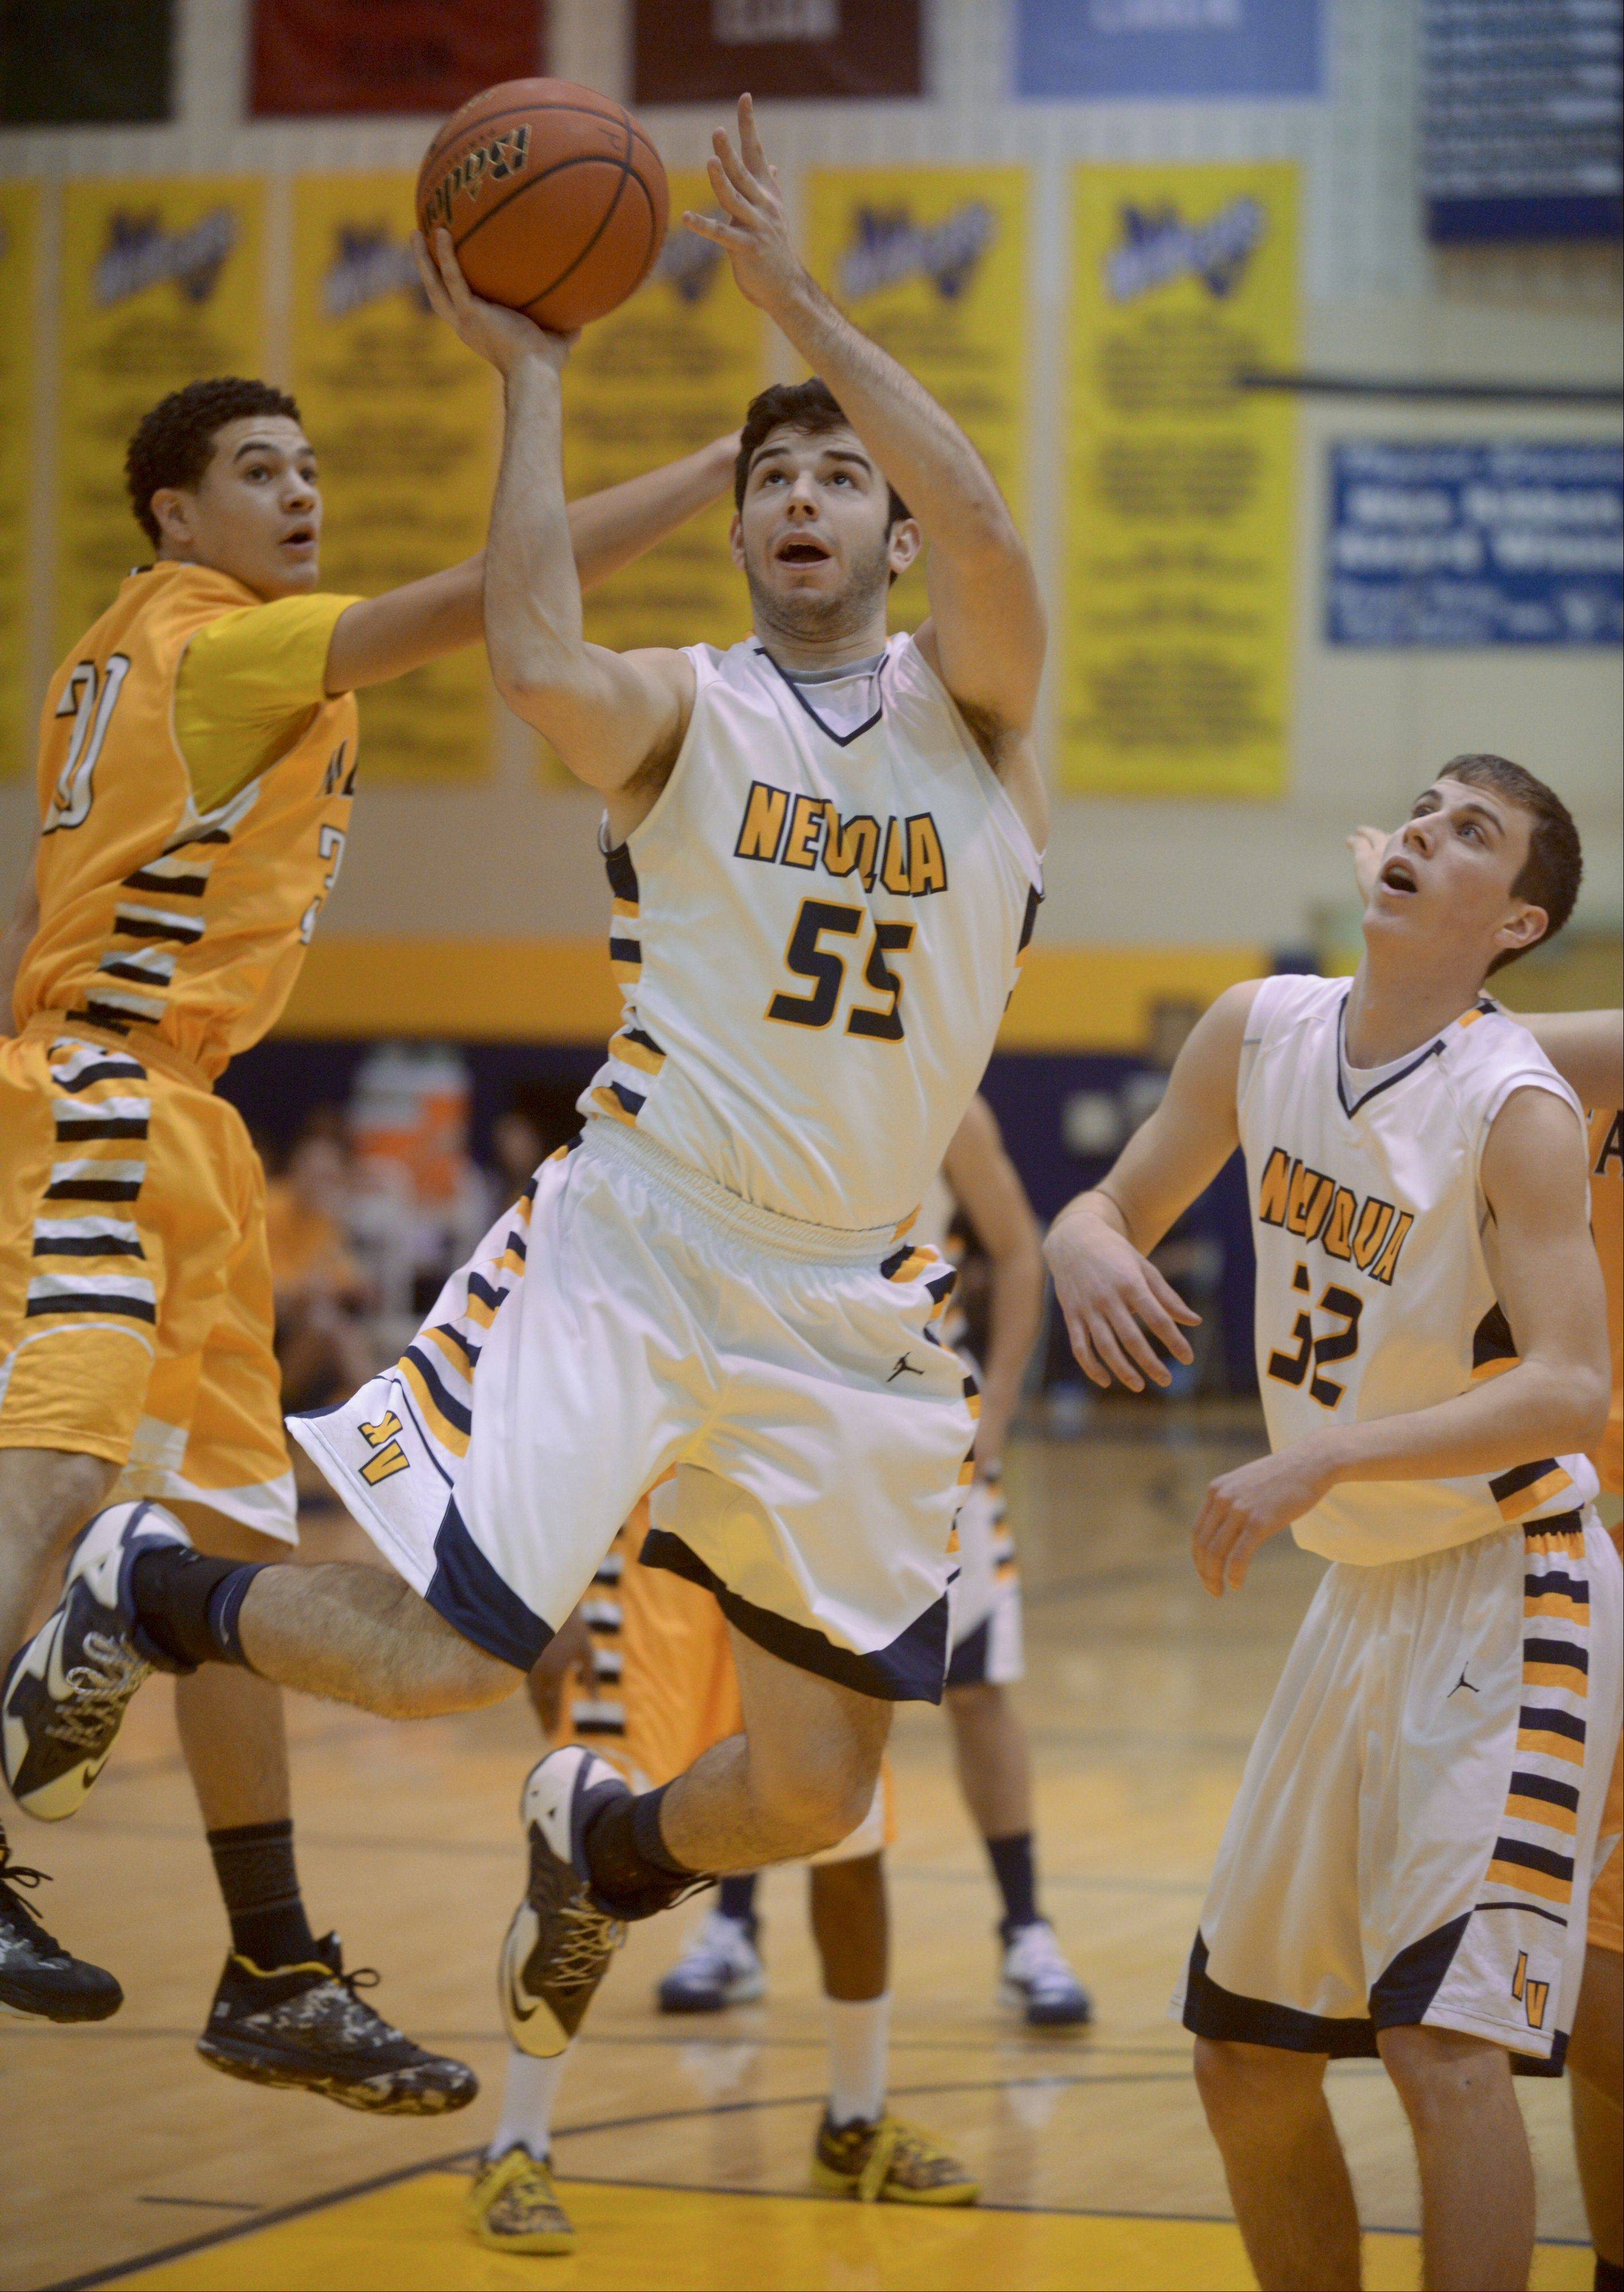 Mark Black/mblack@dailyherald.com Zach Incaudo of Neuqua Valley lays up for a shot against Metea Valley during boys basketball.